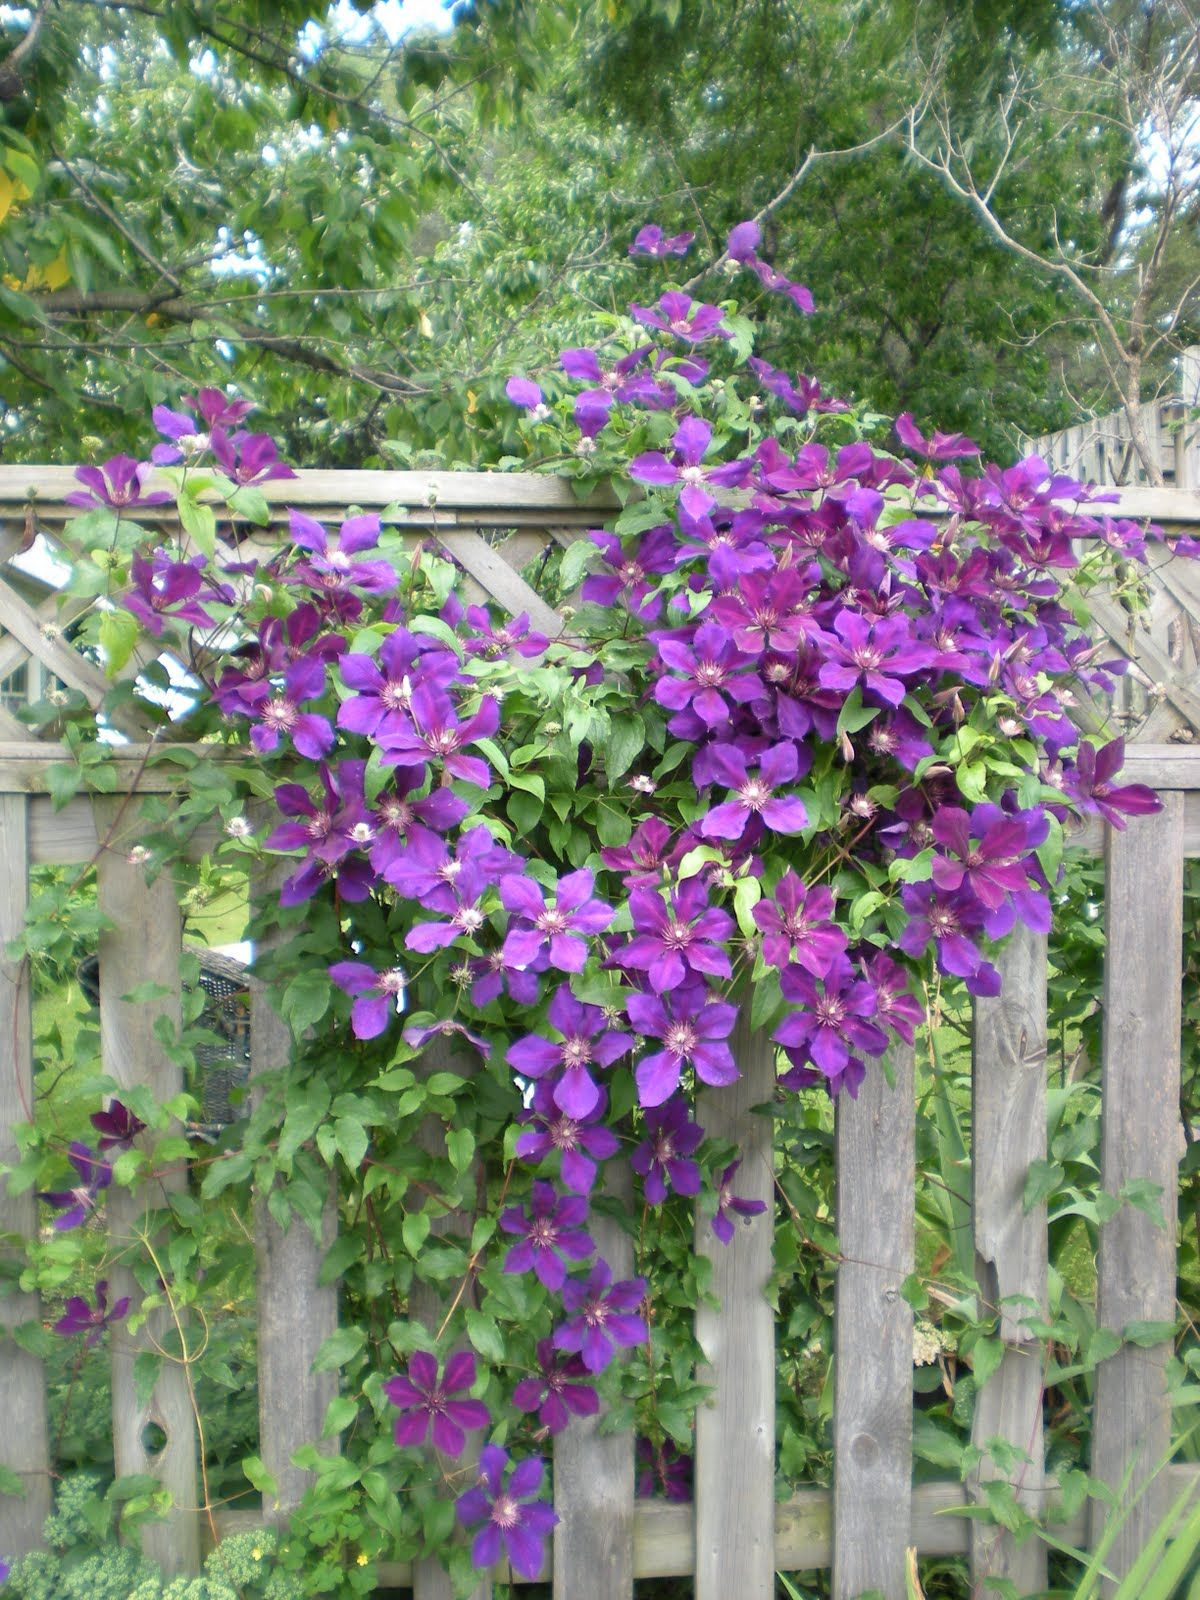 Clematis-put up chicken wire along privacy fencing for ...